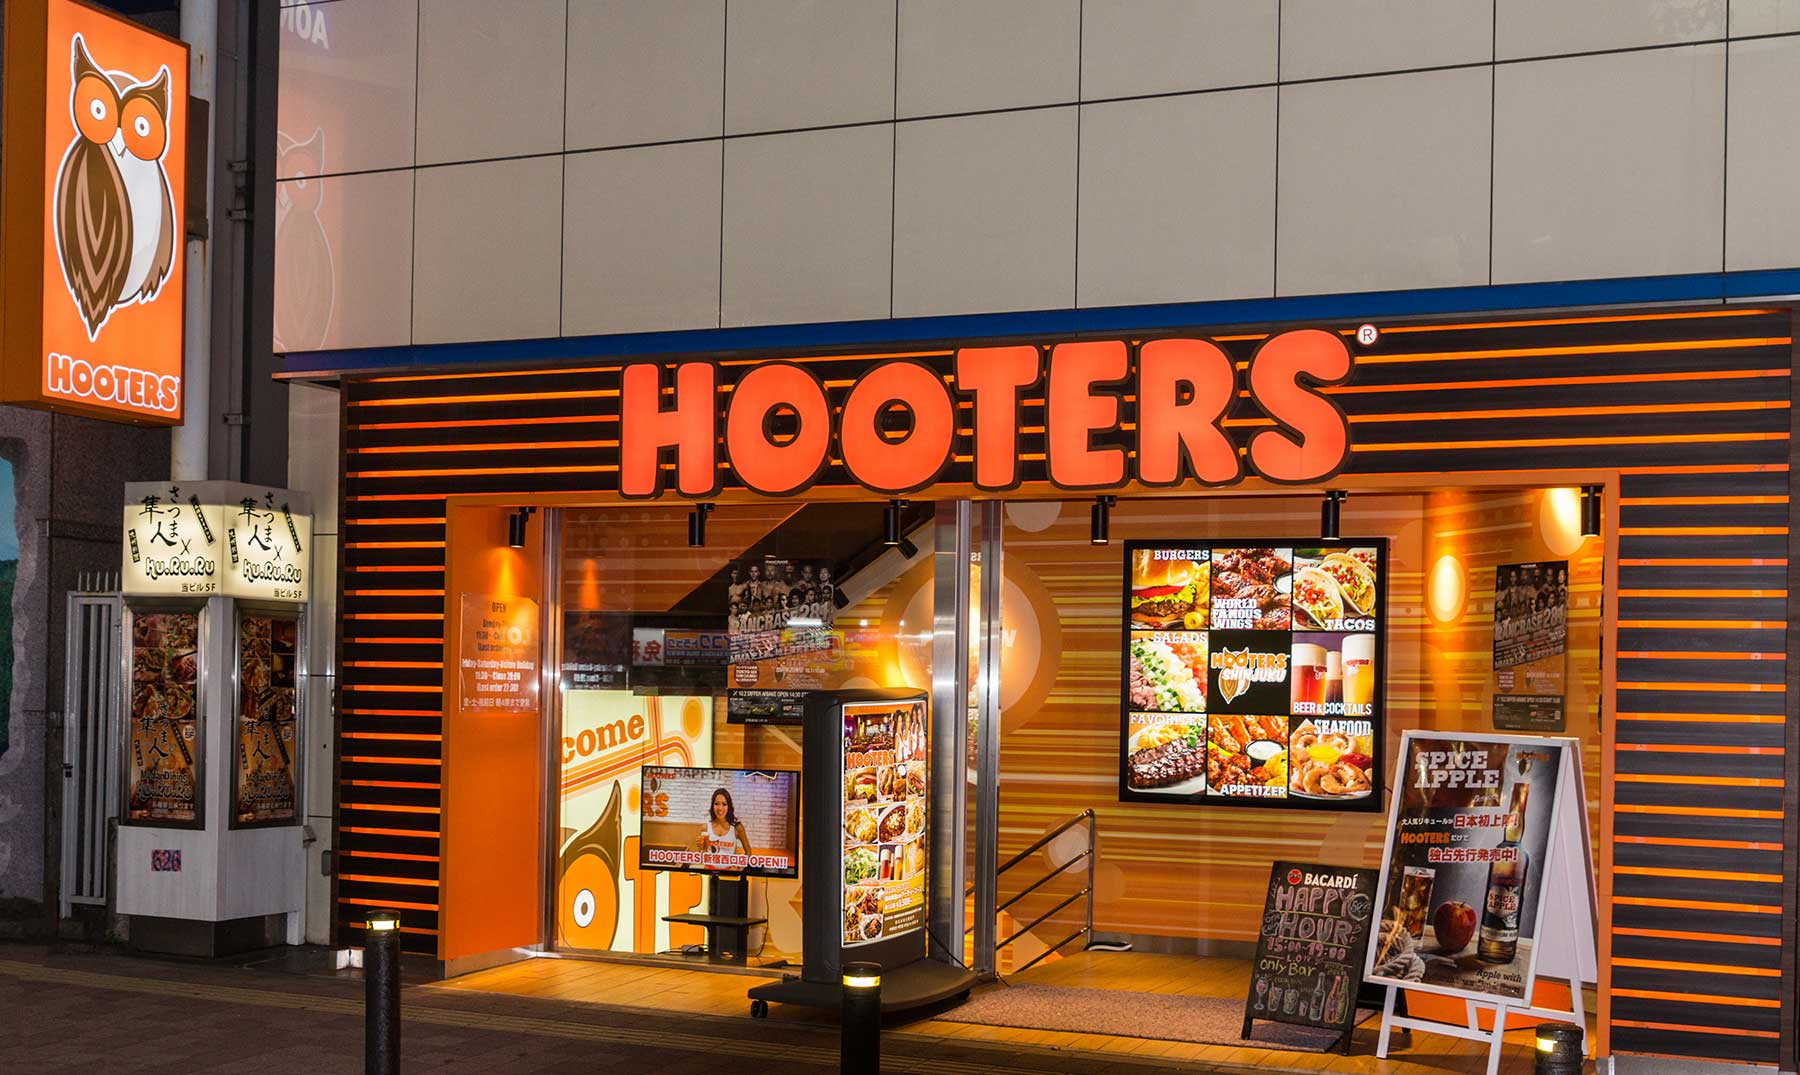 vista-frontal-franquicia-hooters